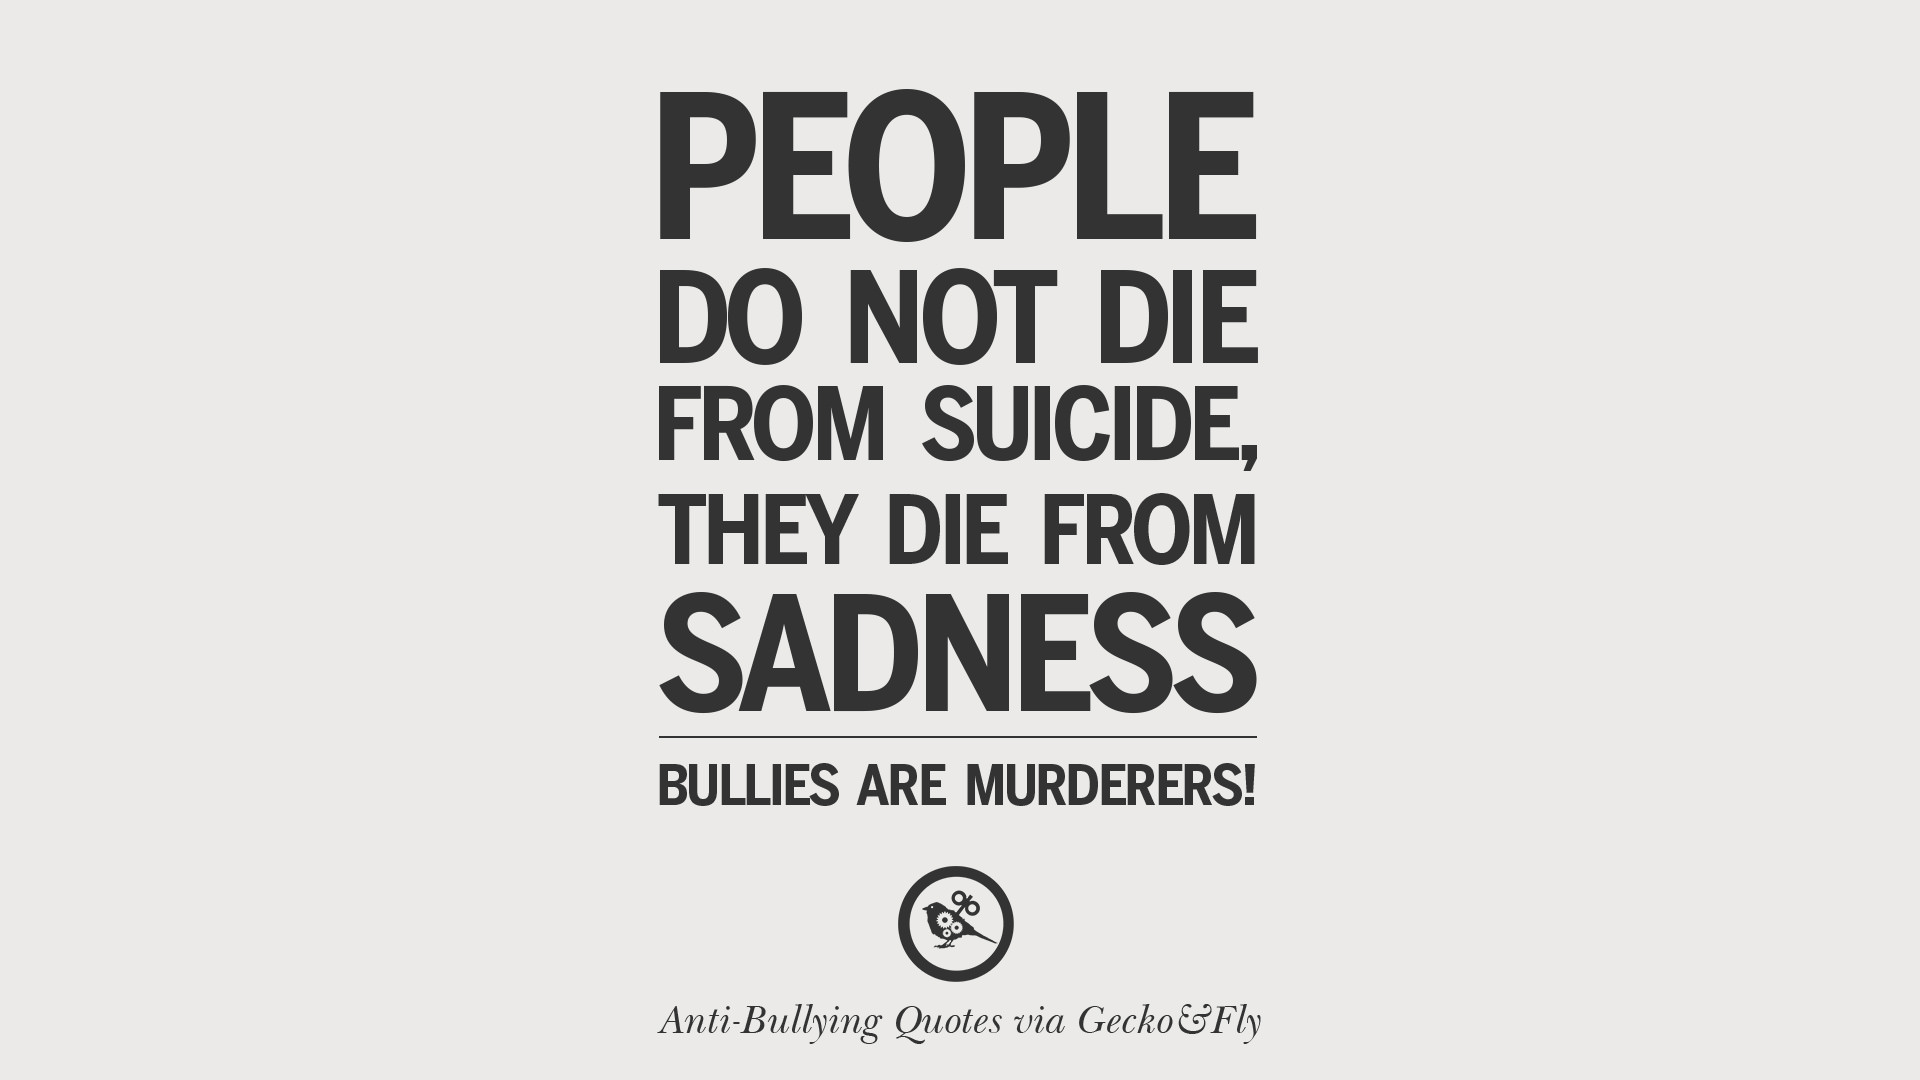 Stop Bullying Quotes 12 Quotes On Anti Cyber Bulling And Social Bullying Effects